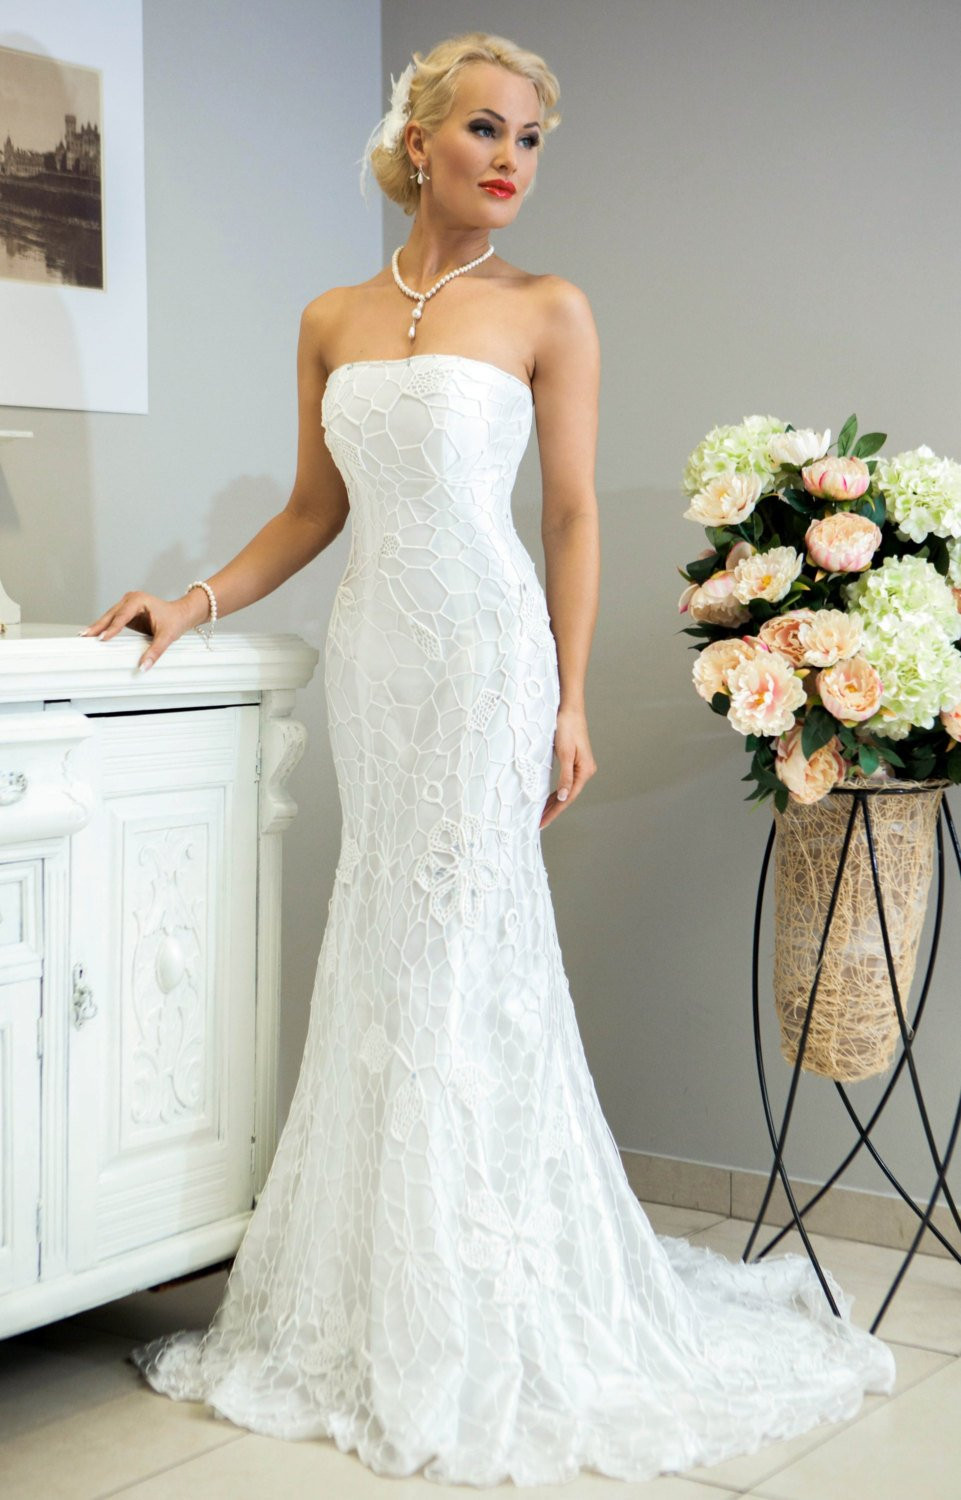 Crochet Wedding Dress Awesome Crochet Dresses for Sale – Oasis Amor Fashion Of Amazing 50 Pictures Crochet Wedding Dress